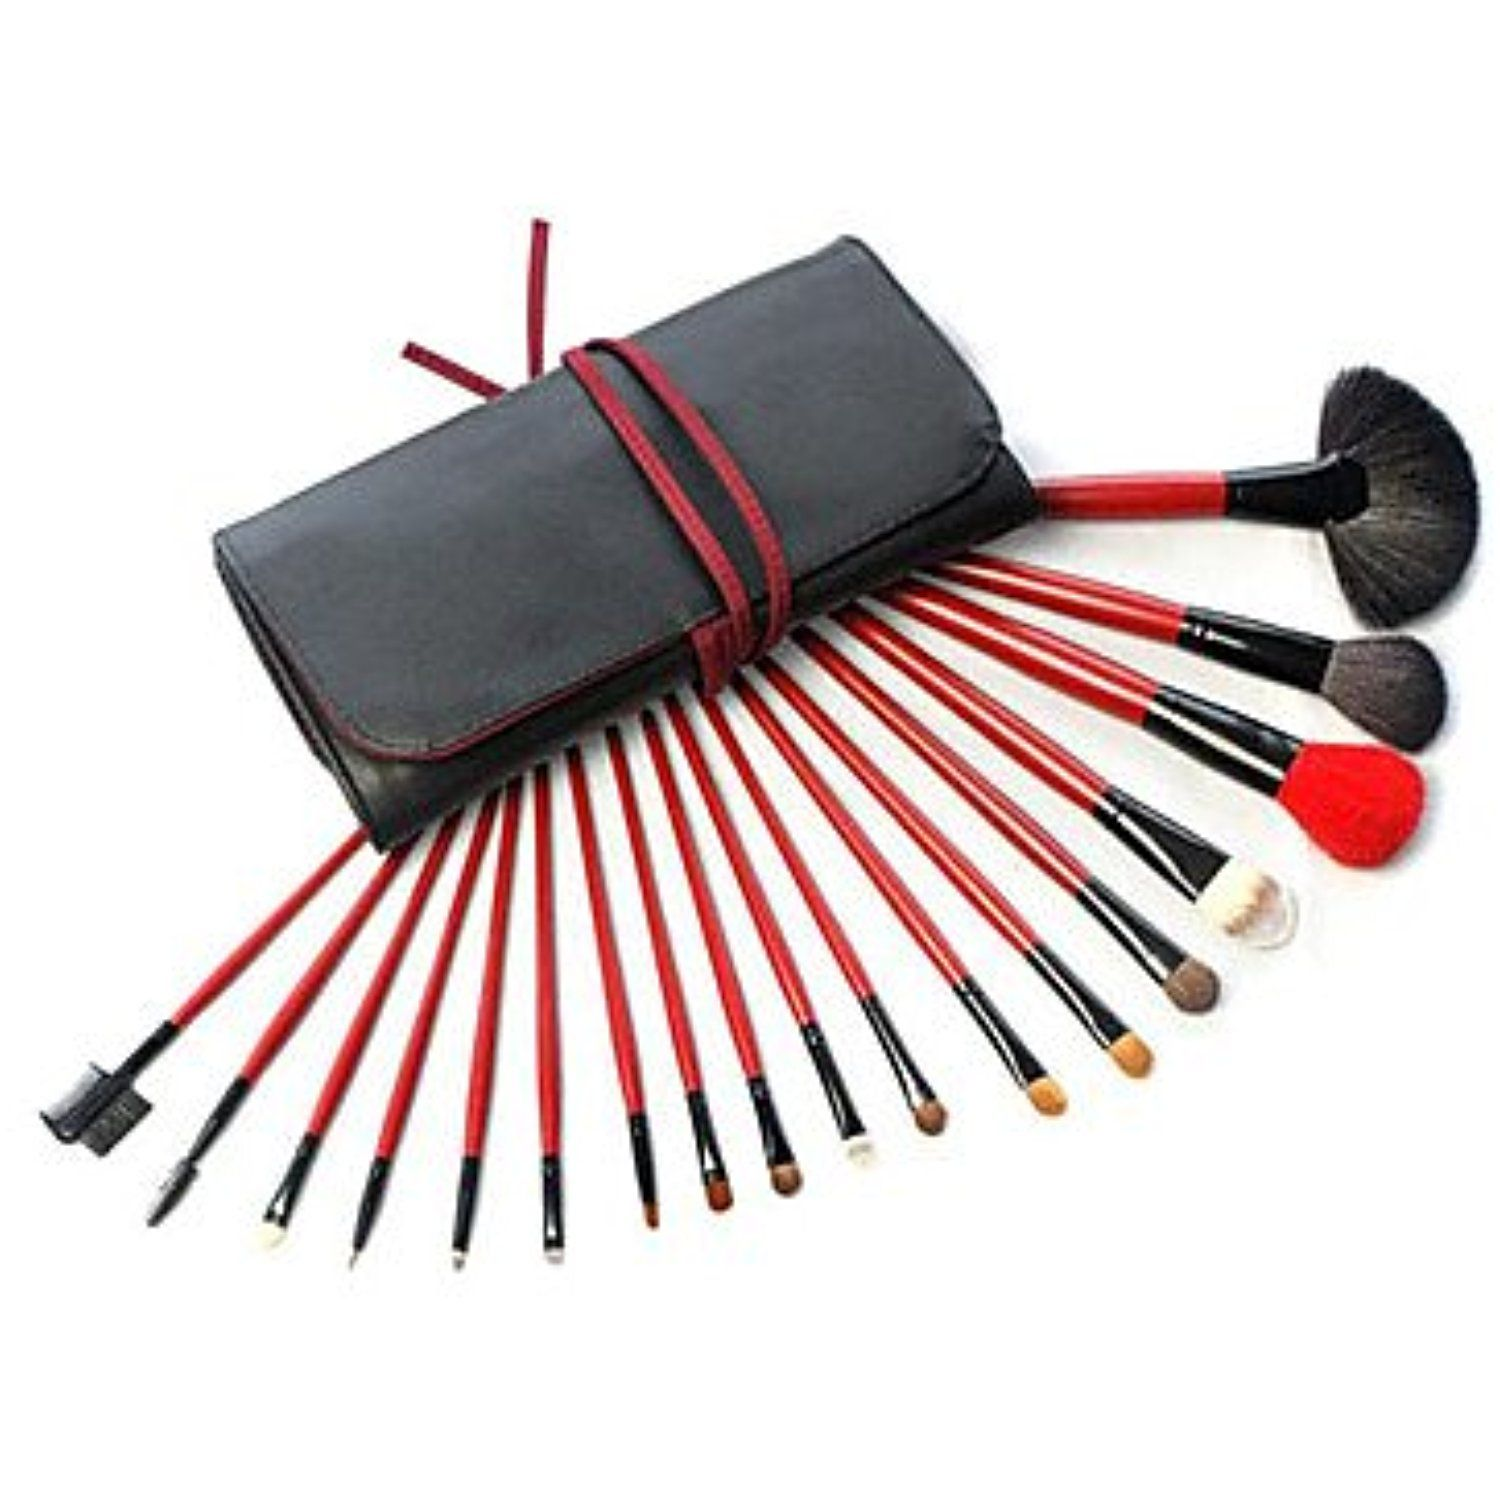 QINF 18pcs Animal Hair Makeup Brushes Set Black Makeup